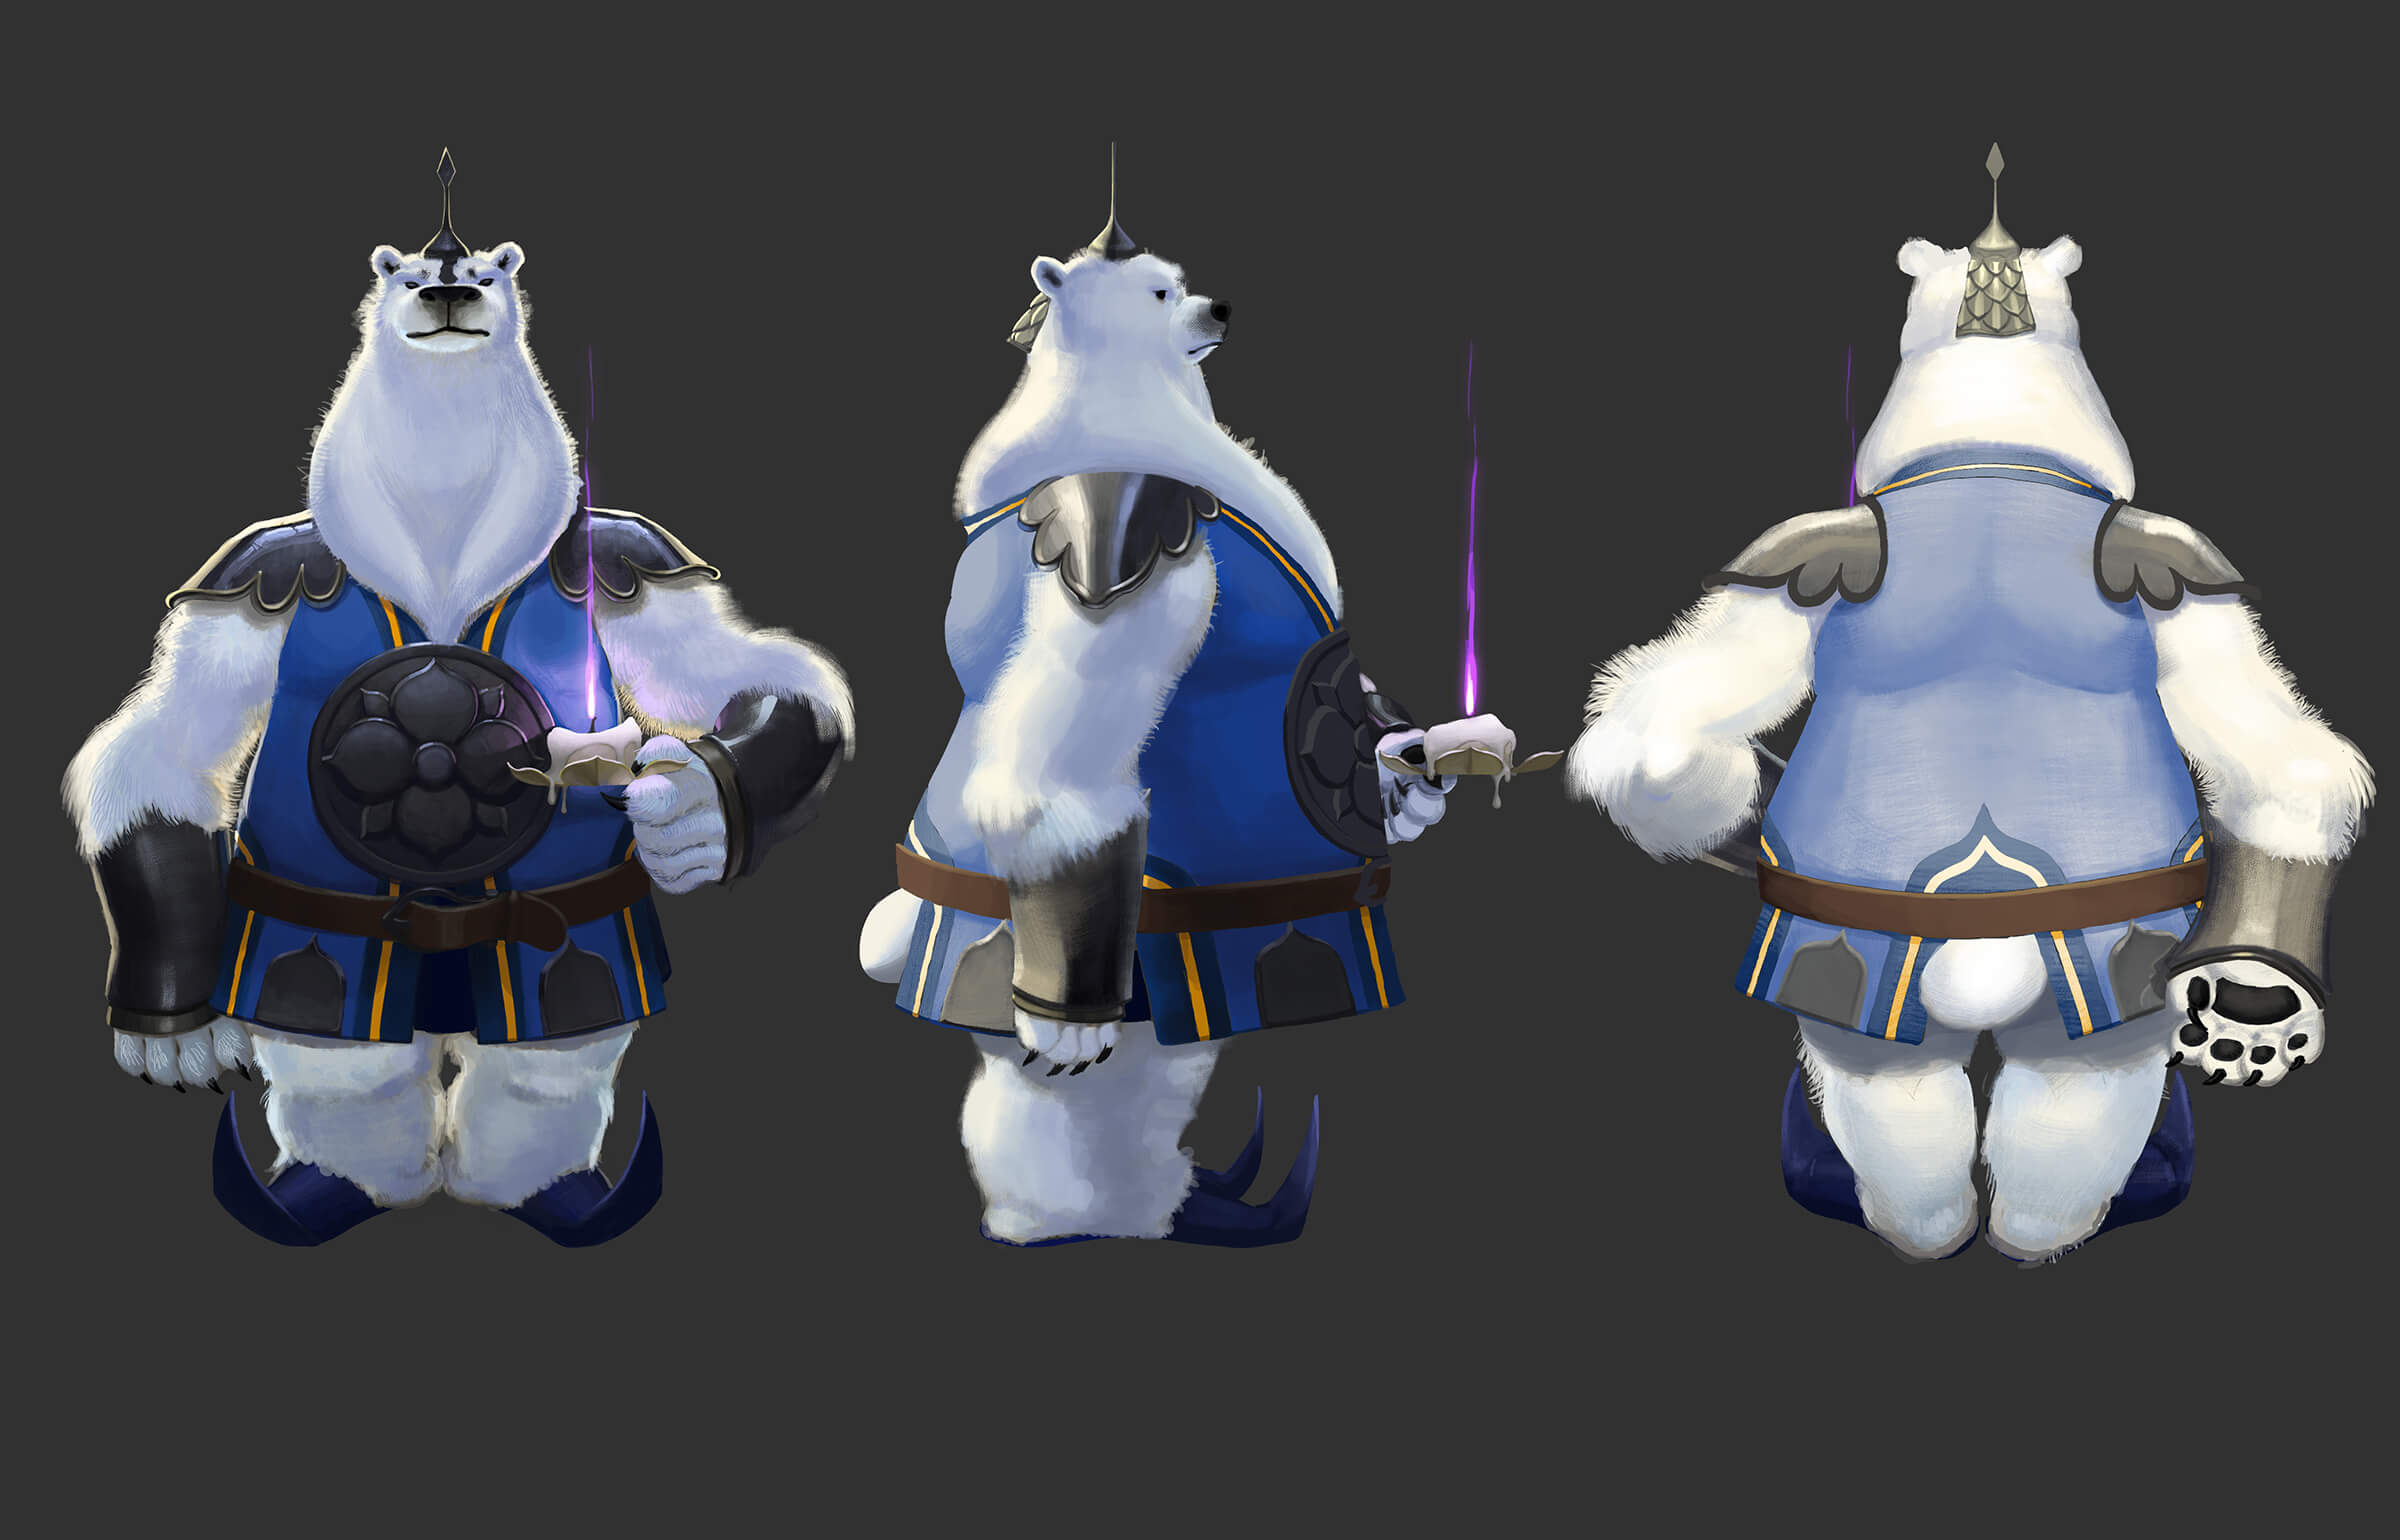 digital painting of a polar bear character standing upright in a soldier's uniform carrying a lit candle